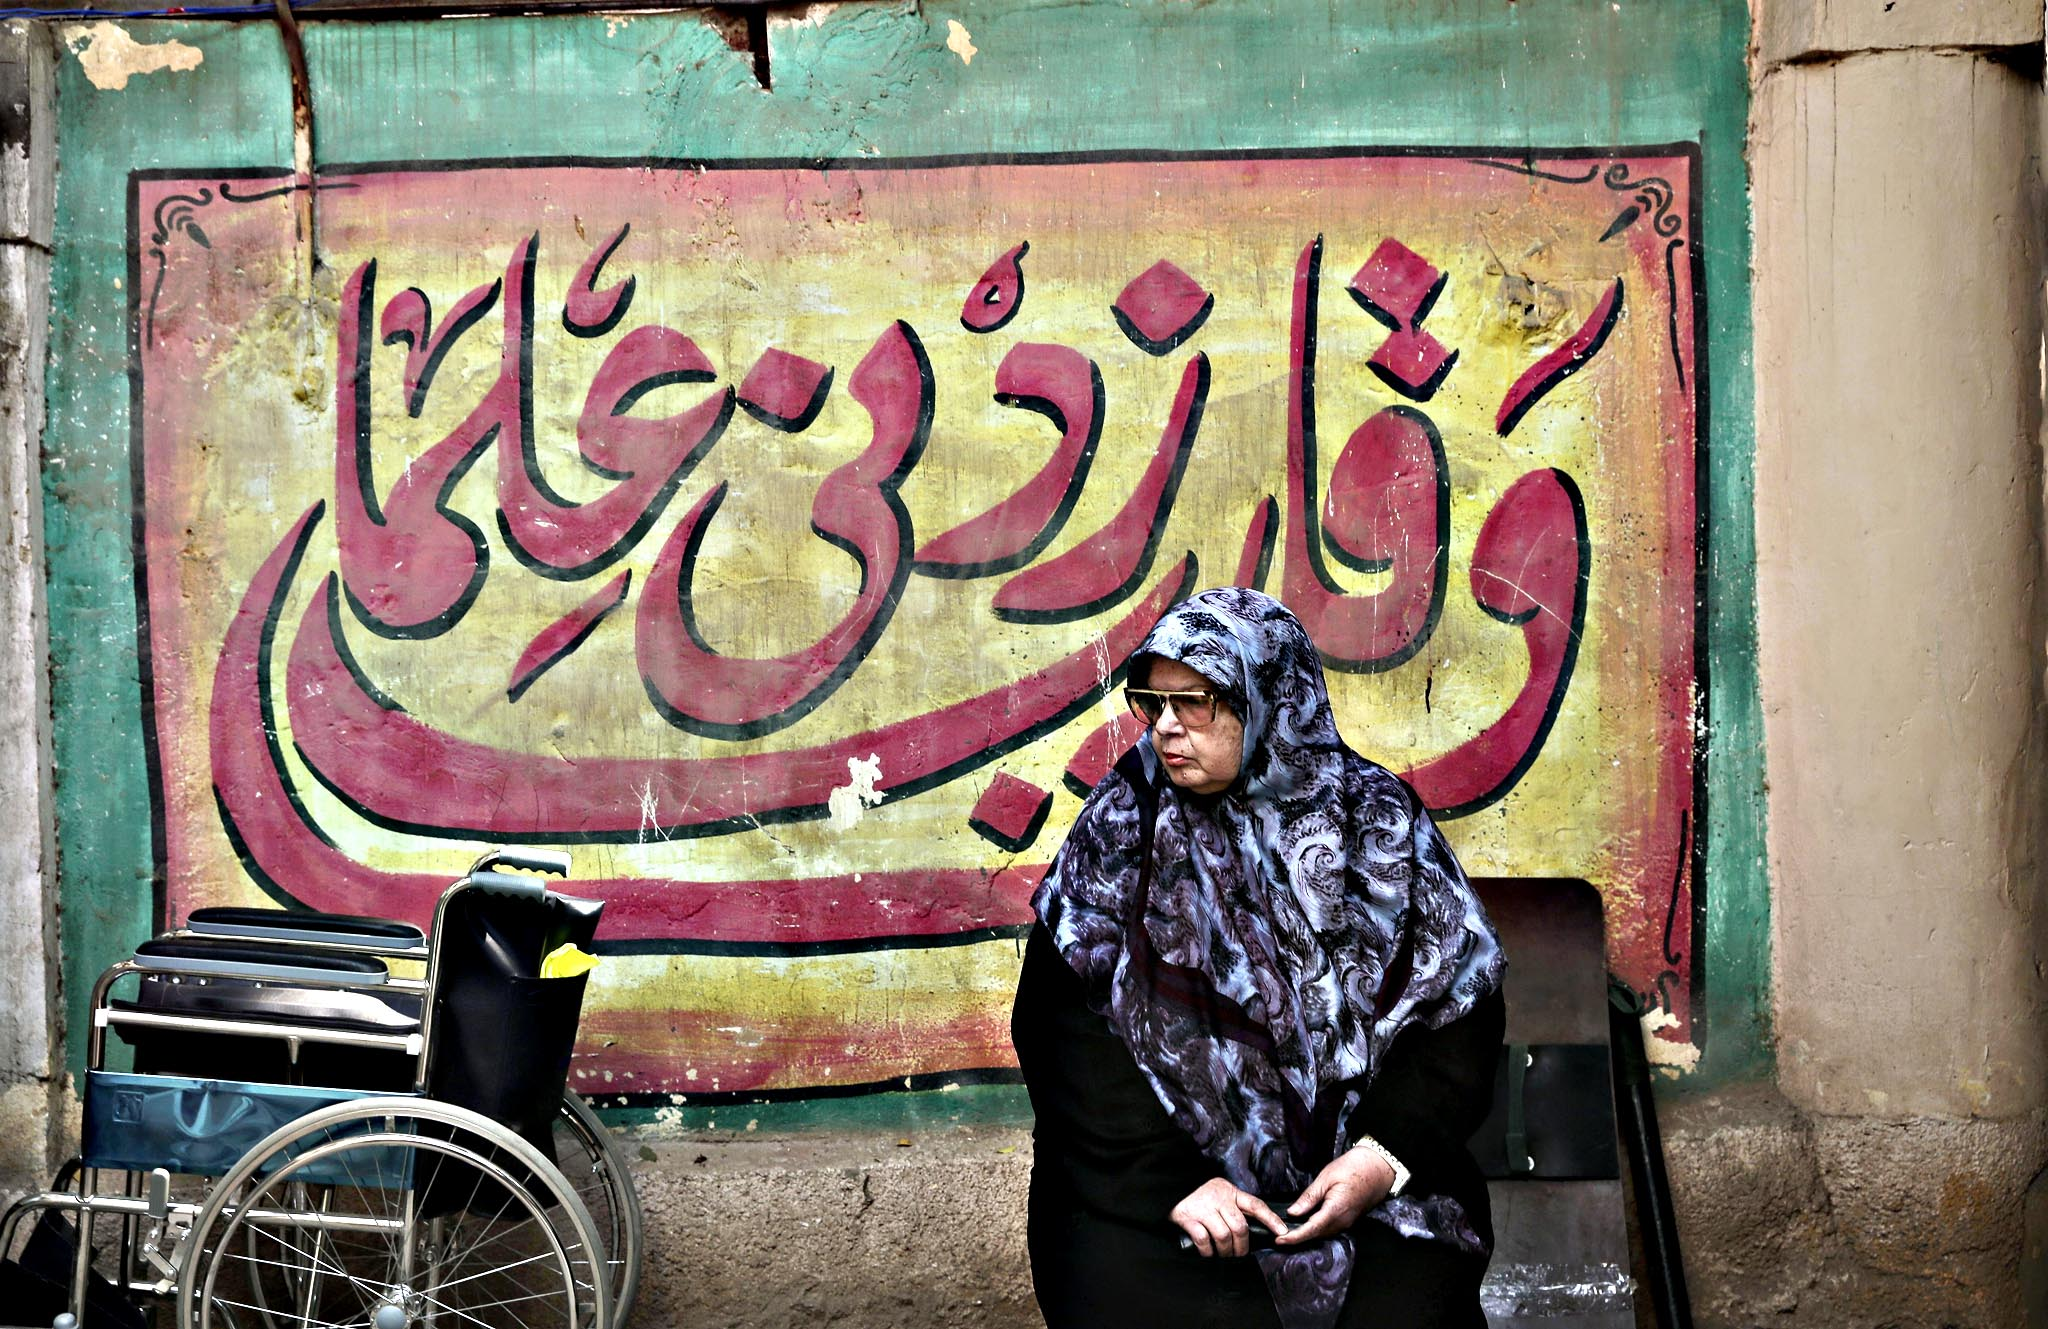 An Egyptian woman waits for an election worker to check her identification card inside a polling center during the second phase of the parliamentary election, in the Maadi district of Cairo, Egypt, Monday, Nov. 23, 2015.